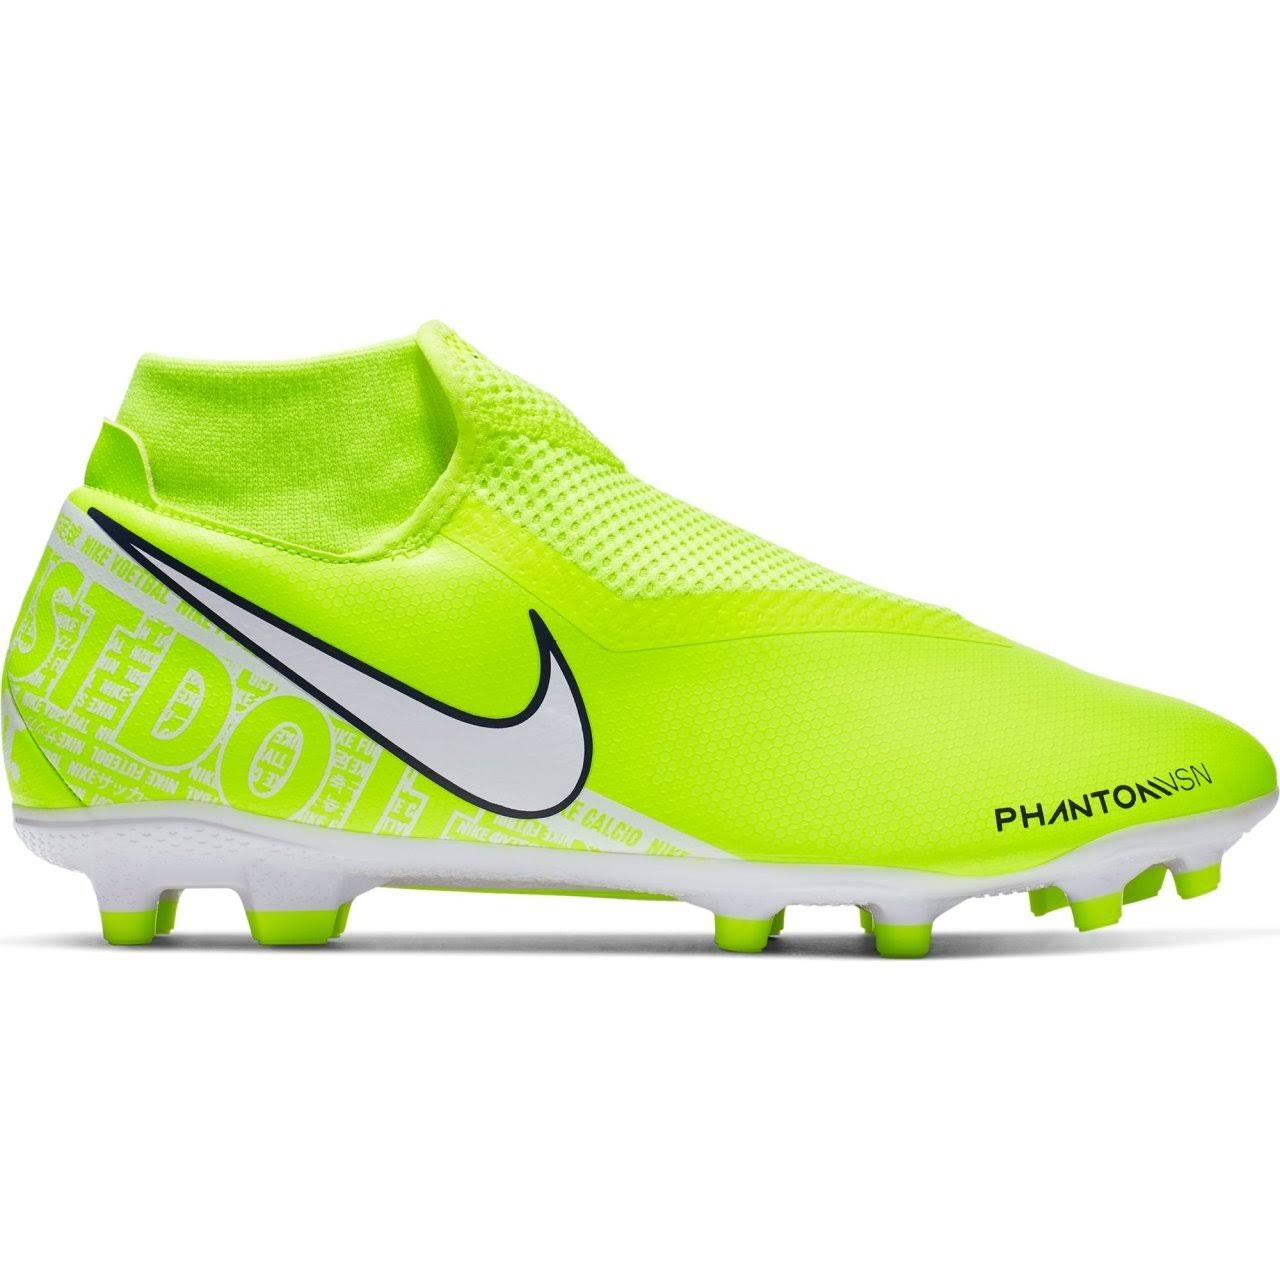 Nike Phantom Vision Academy DF FG/MG Football Boots